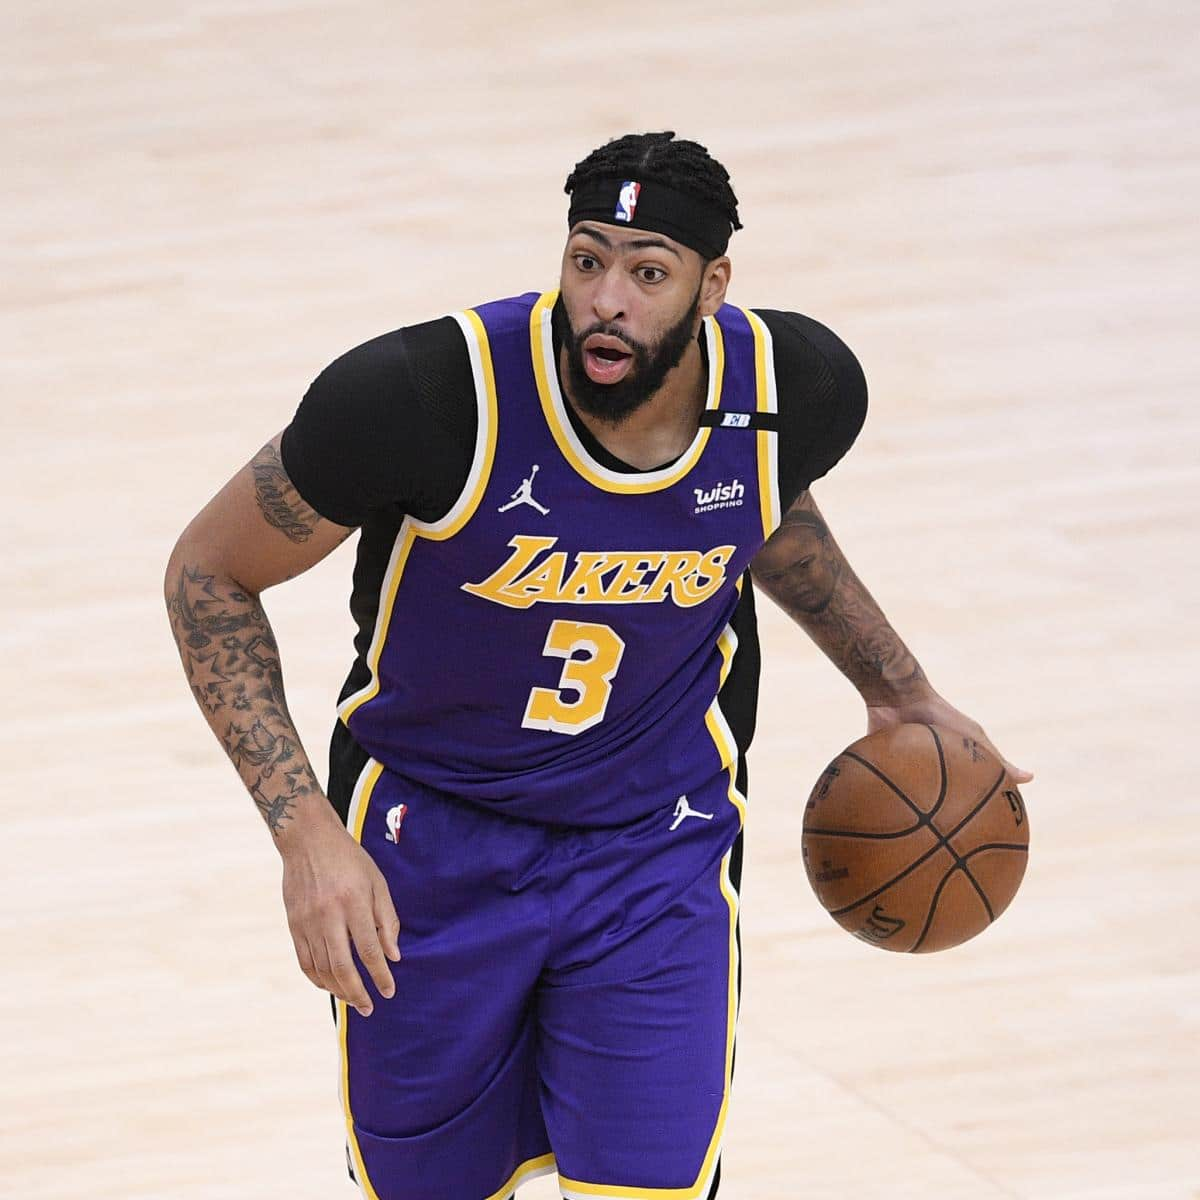 anthony-davis-says-the-handiest-means-is-up-for-lakers-after-loss-to-raptors.jpg